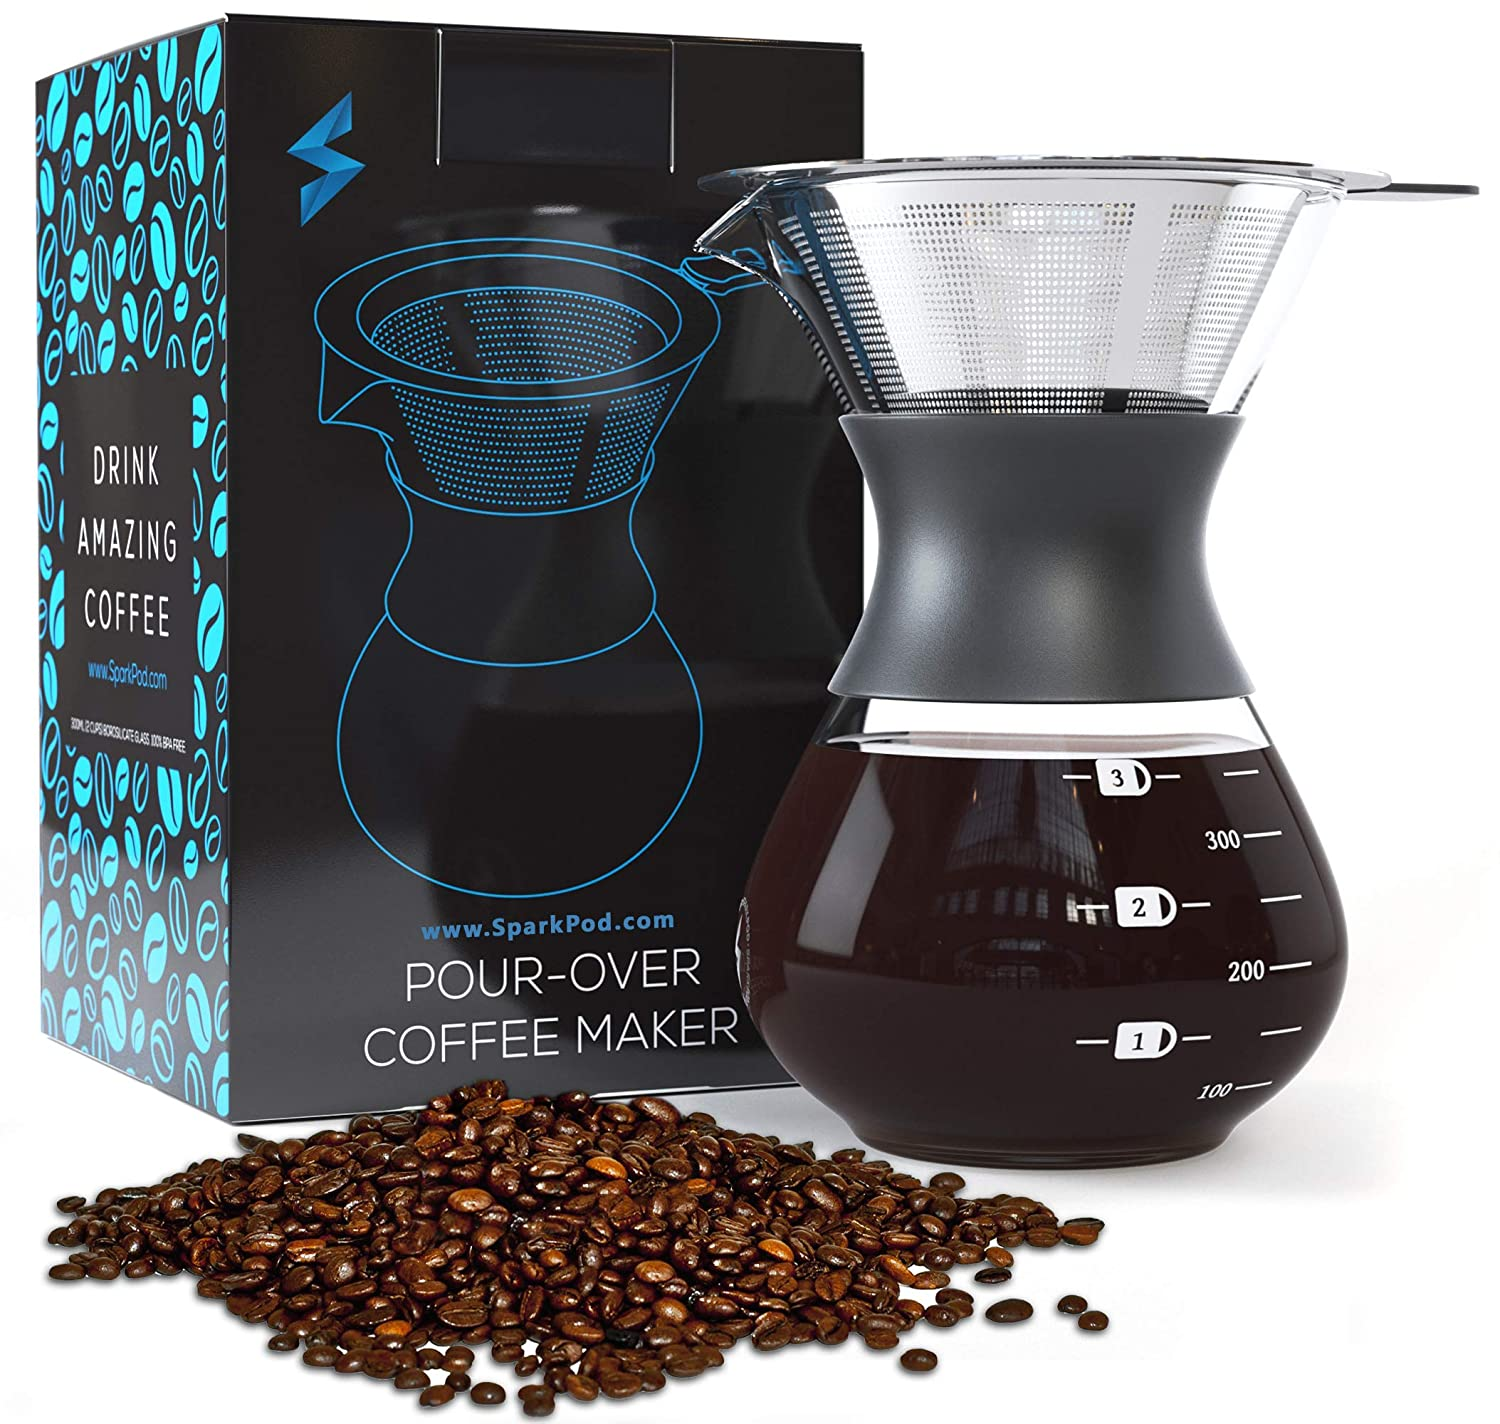 SparkPod Pour Over Coffee Maker w Stainless Steel Paperless Filter – Ultra-Fine Micro Mesh – One Cup Carafe Dripper – Kitchen, Office, Travel – Creates Fresh, Bold Flavors